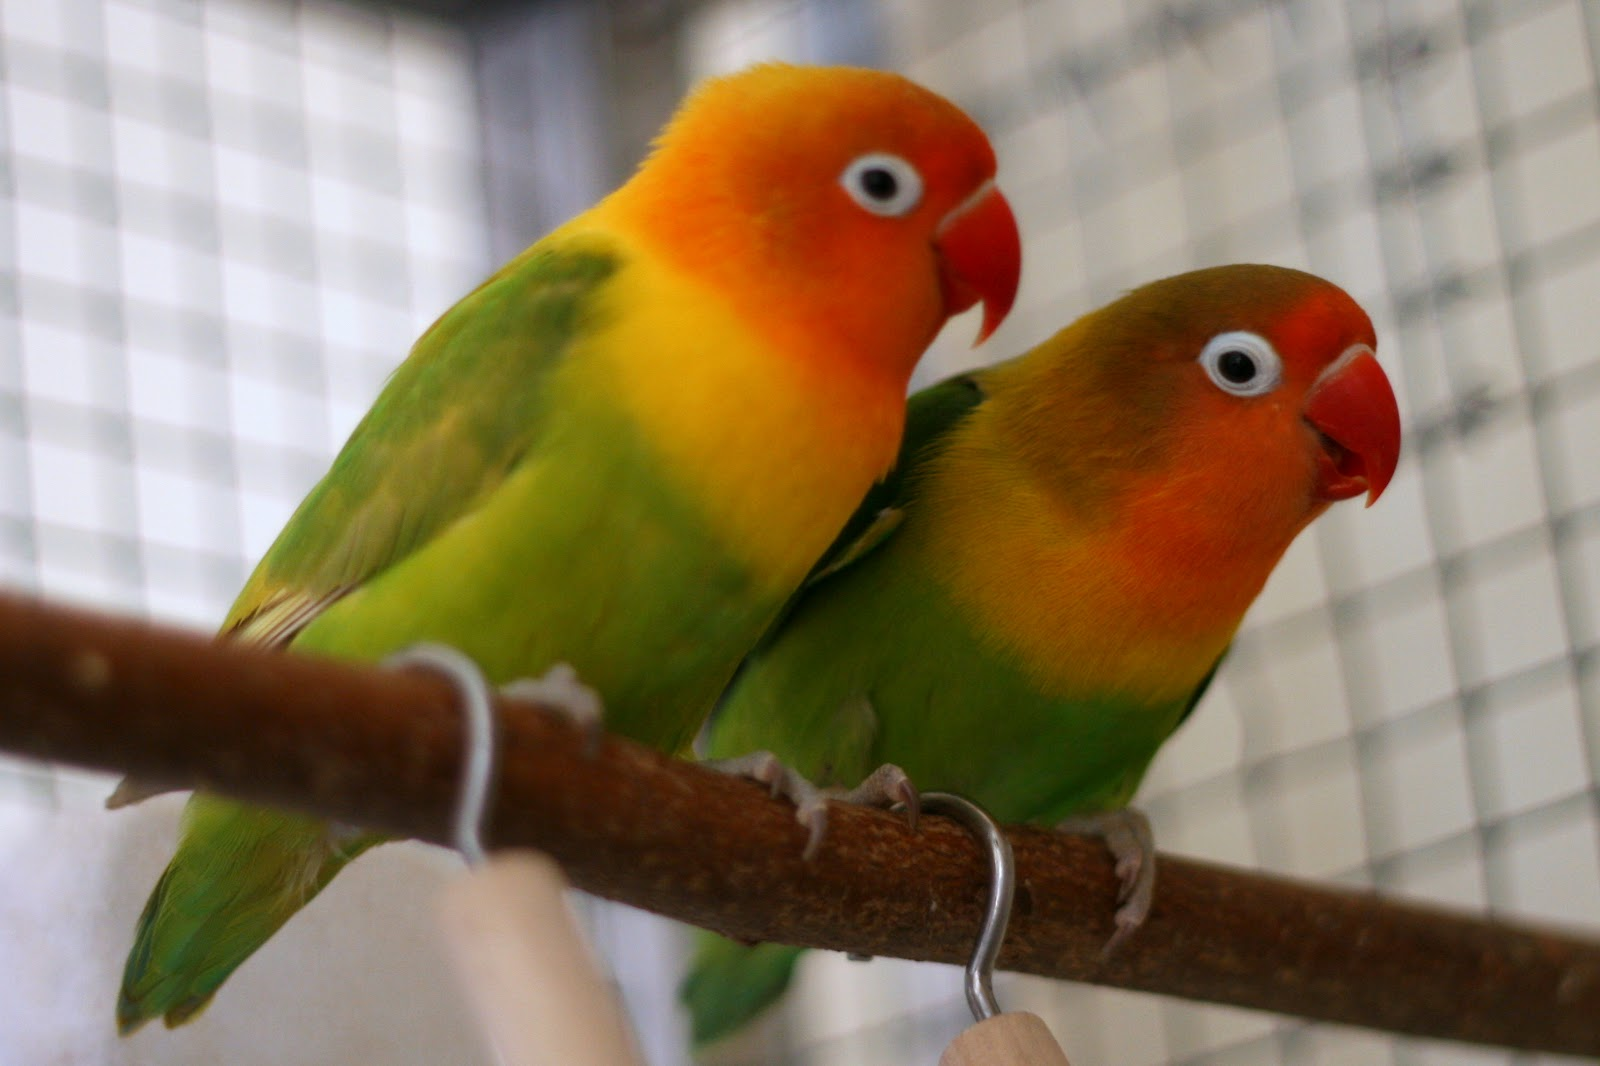 http://3.bp.blogspot.com/-lp9q3C7hzjg/UQfrhwQ286I/AAAAAAAAHg8/220G9tTOmKw/s1600/love-birds-wallpapers%2004.jpg